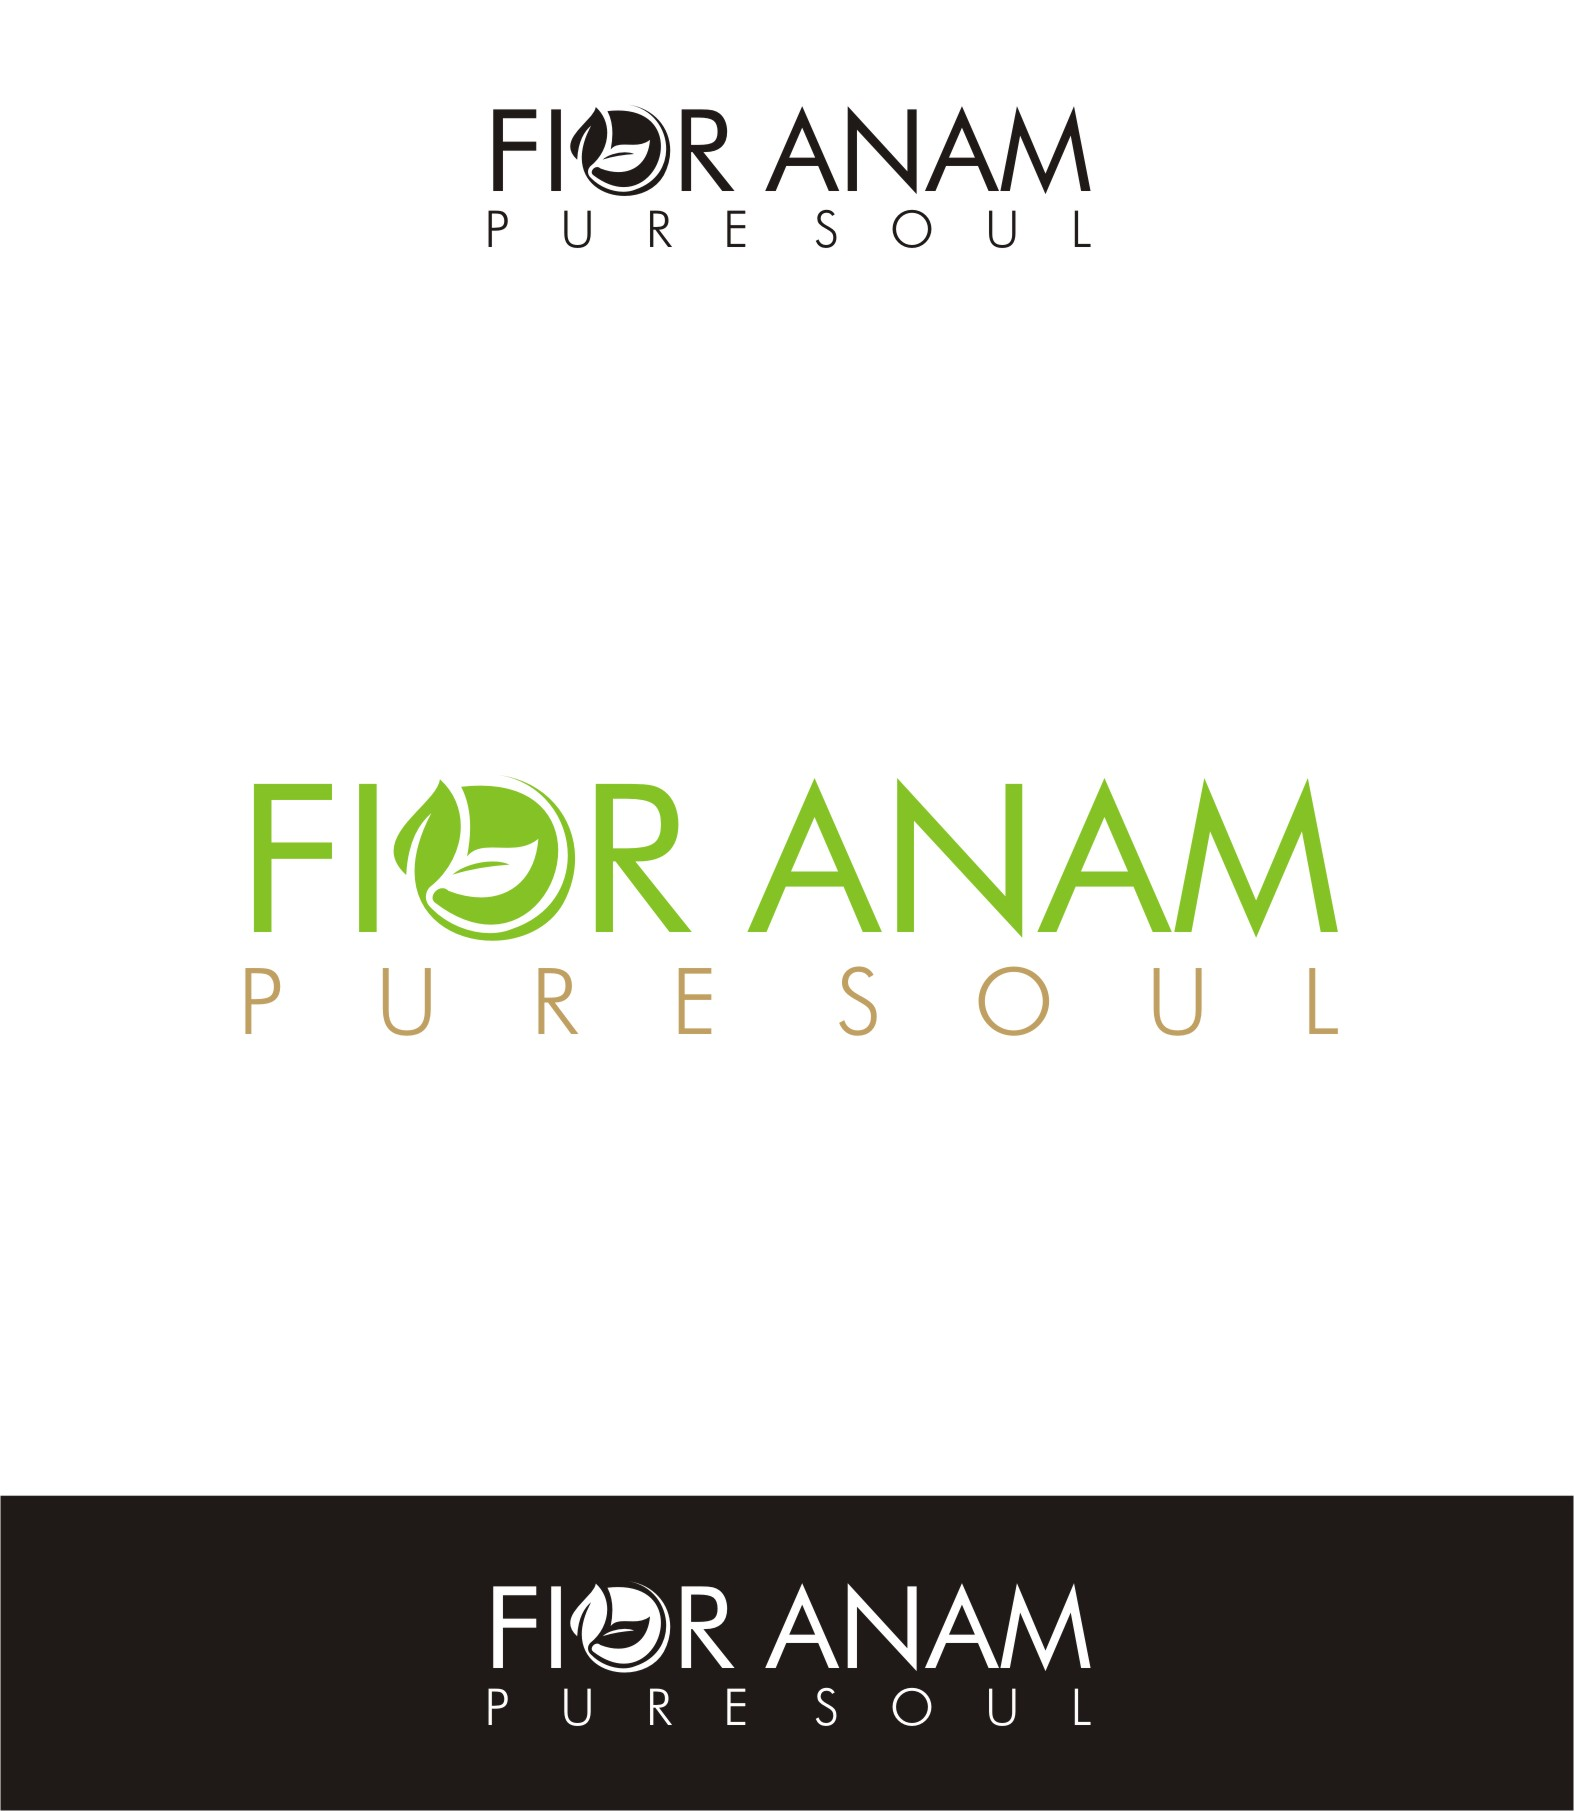 Logo Design by Lynx Graphics - Entry No. 321 in the Logo Design Contest Creative Logo Design for Fior Anam.